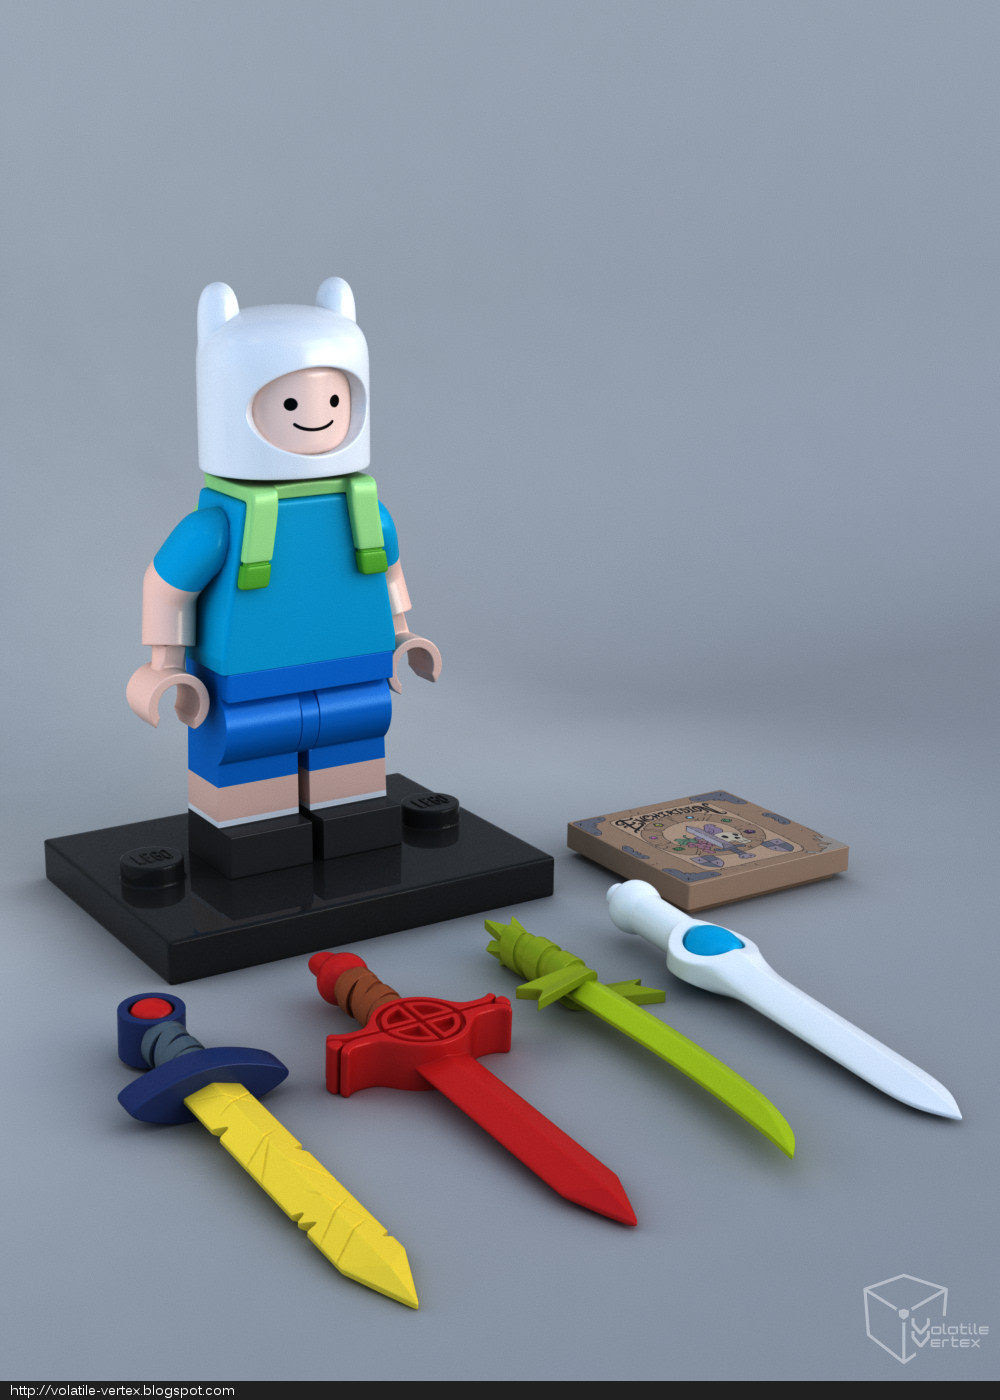 Adventure Time: Lego Finn by Volatile Vertex